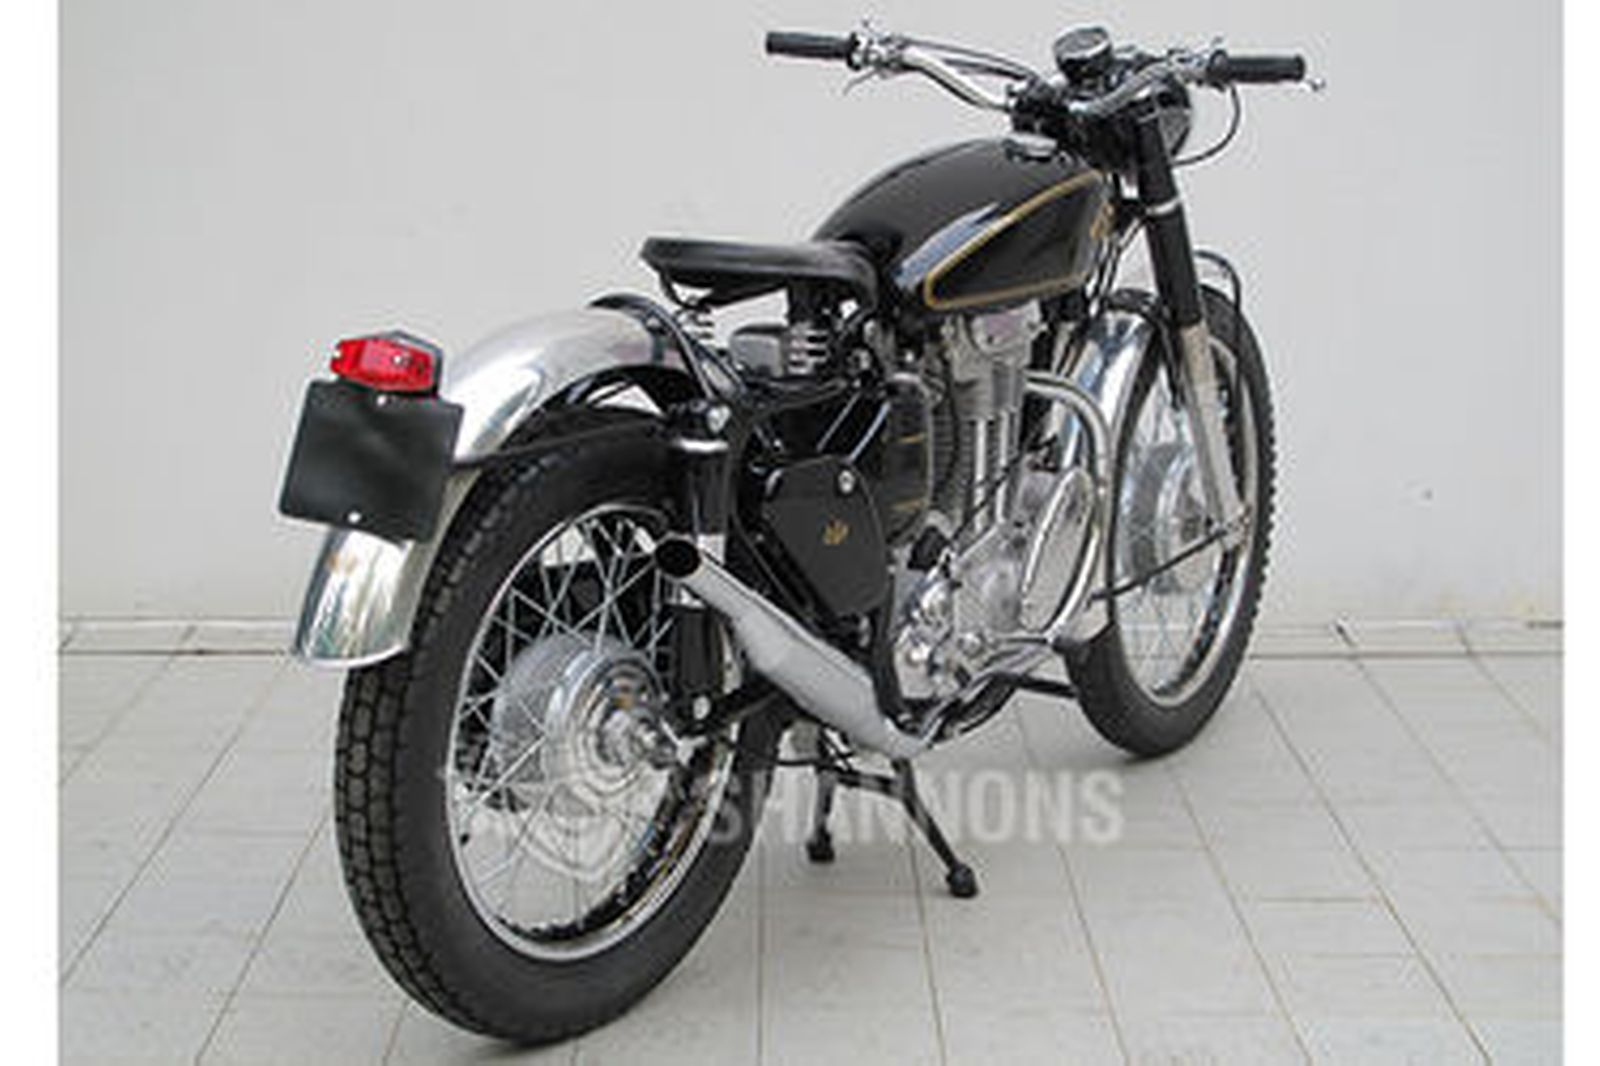 AJS 16M 350cc Motorcycle